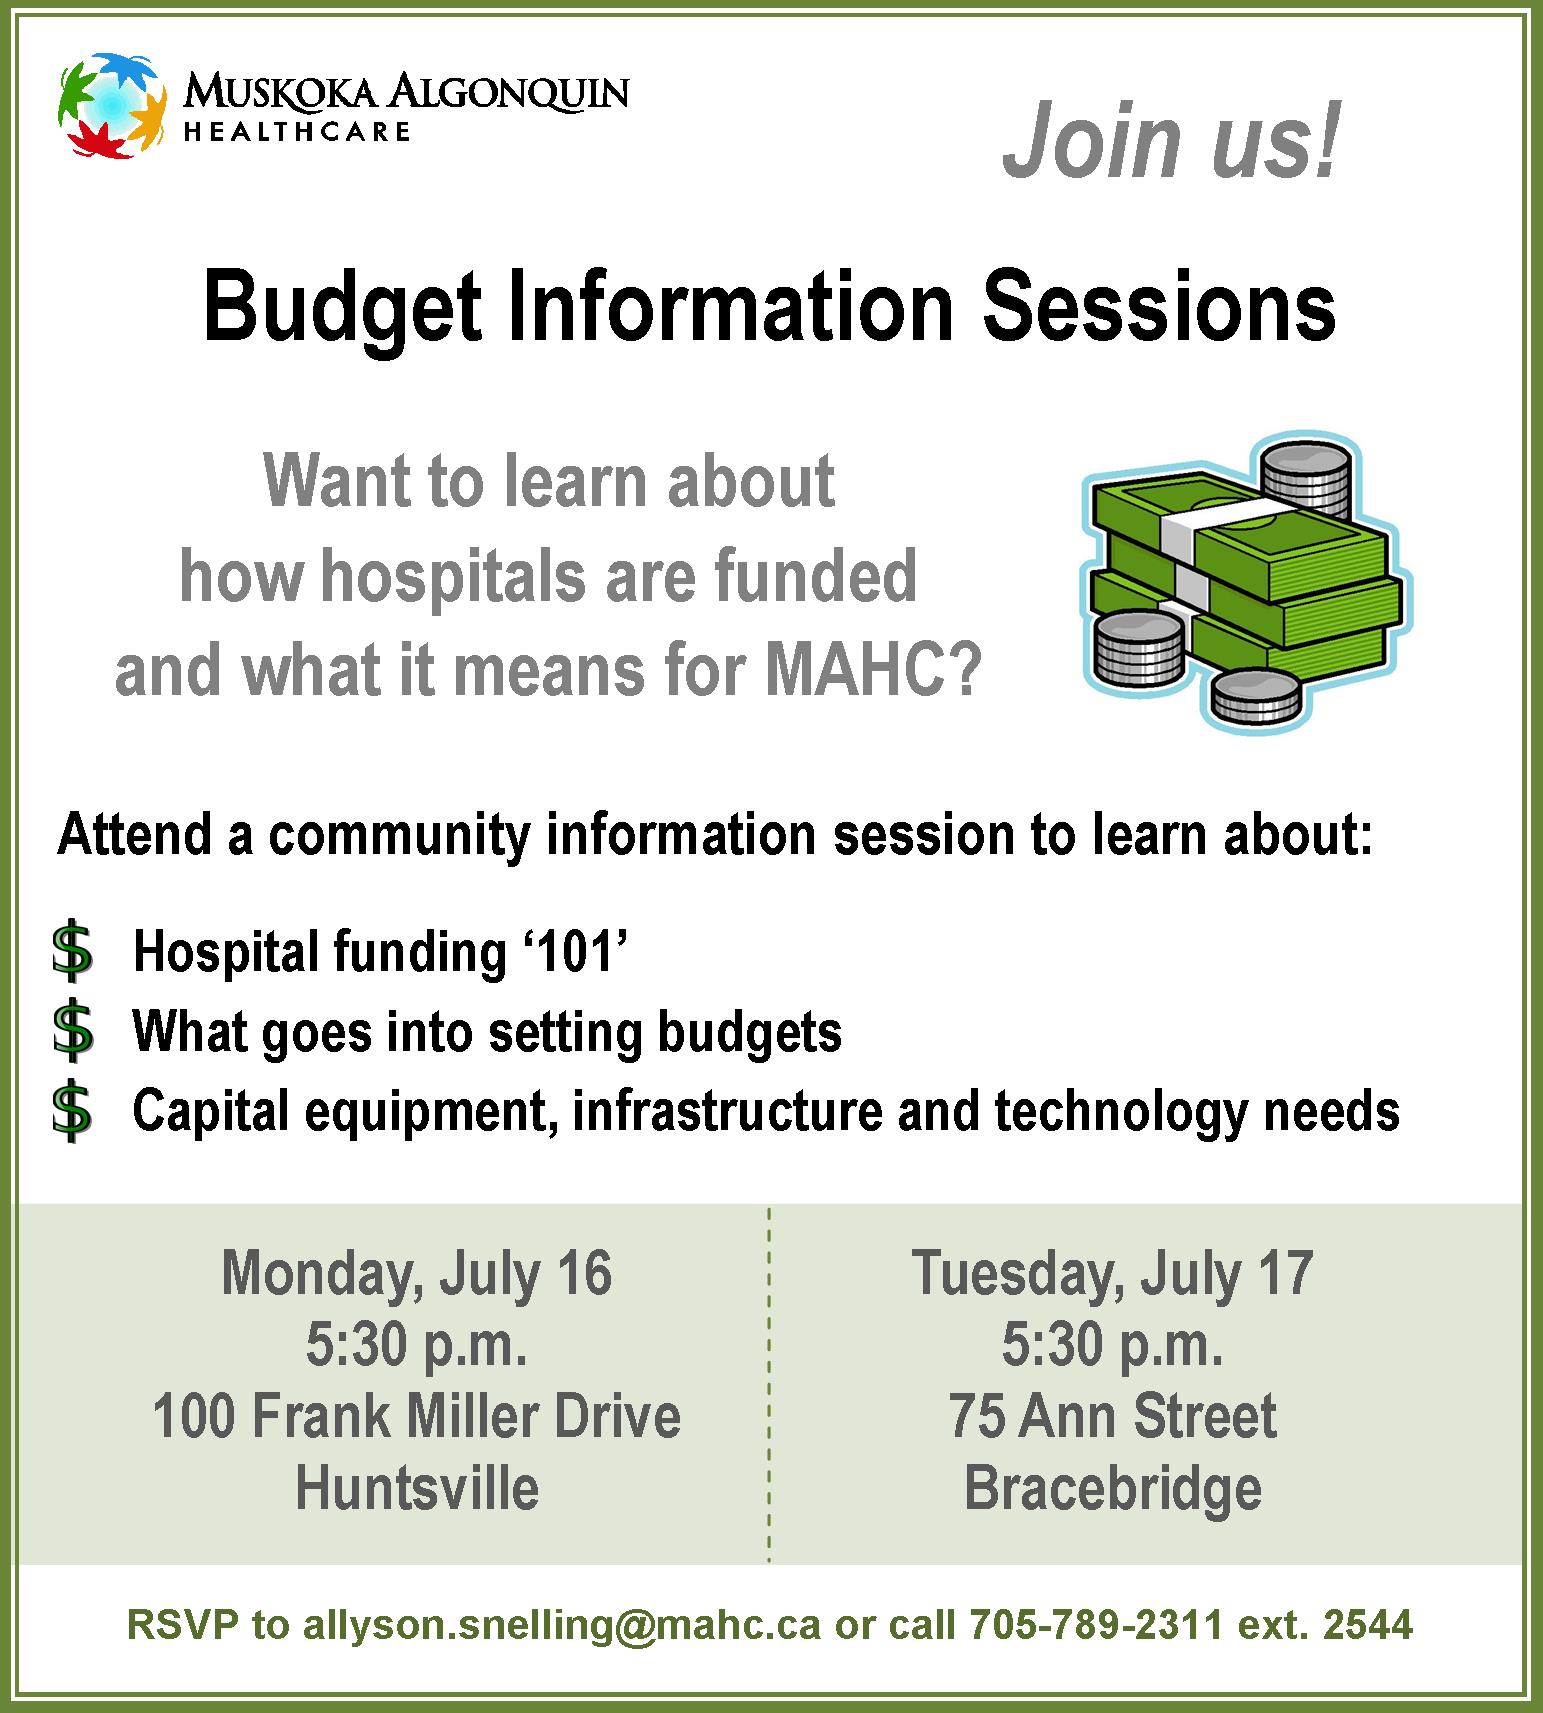 Public Notice for Community Budget Information Sessions